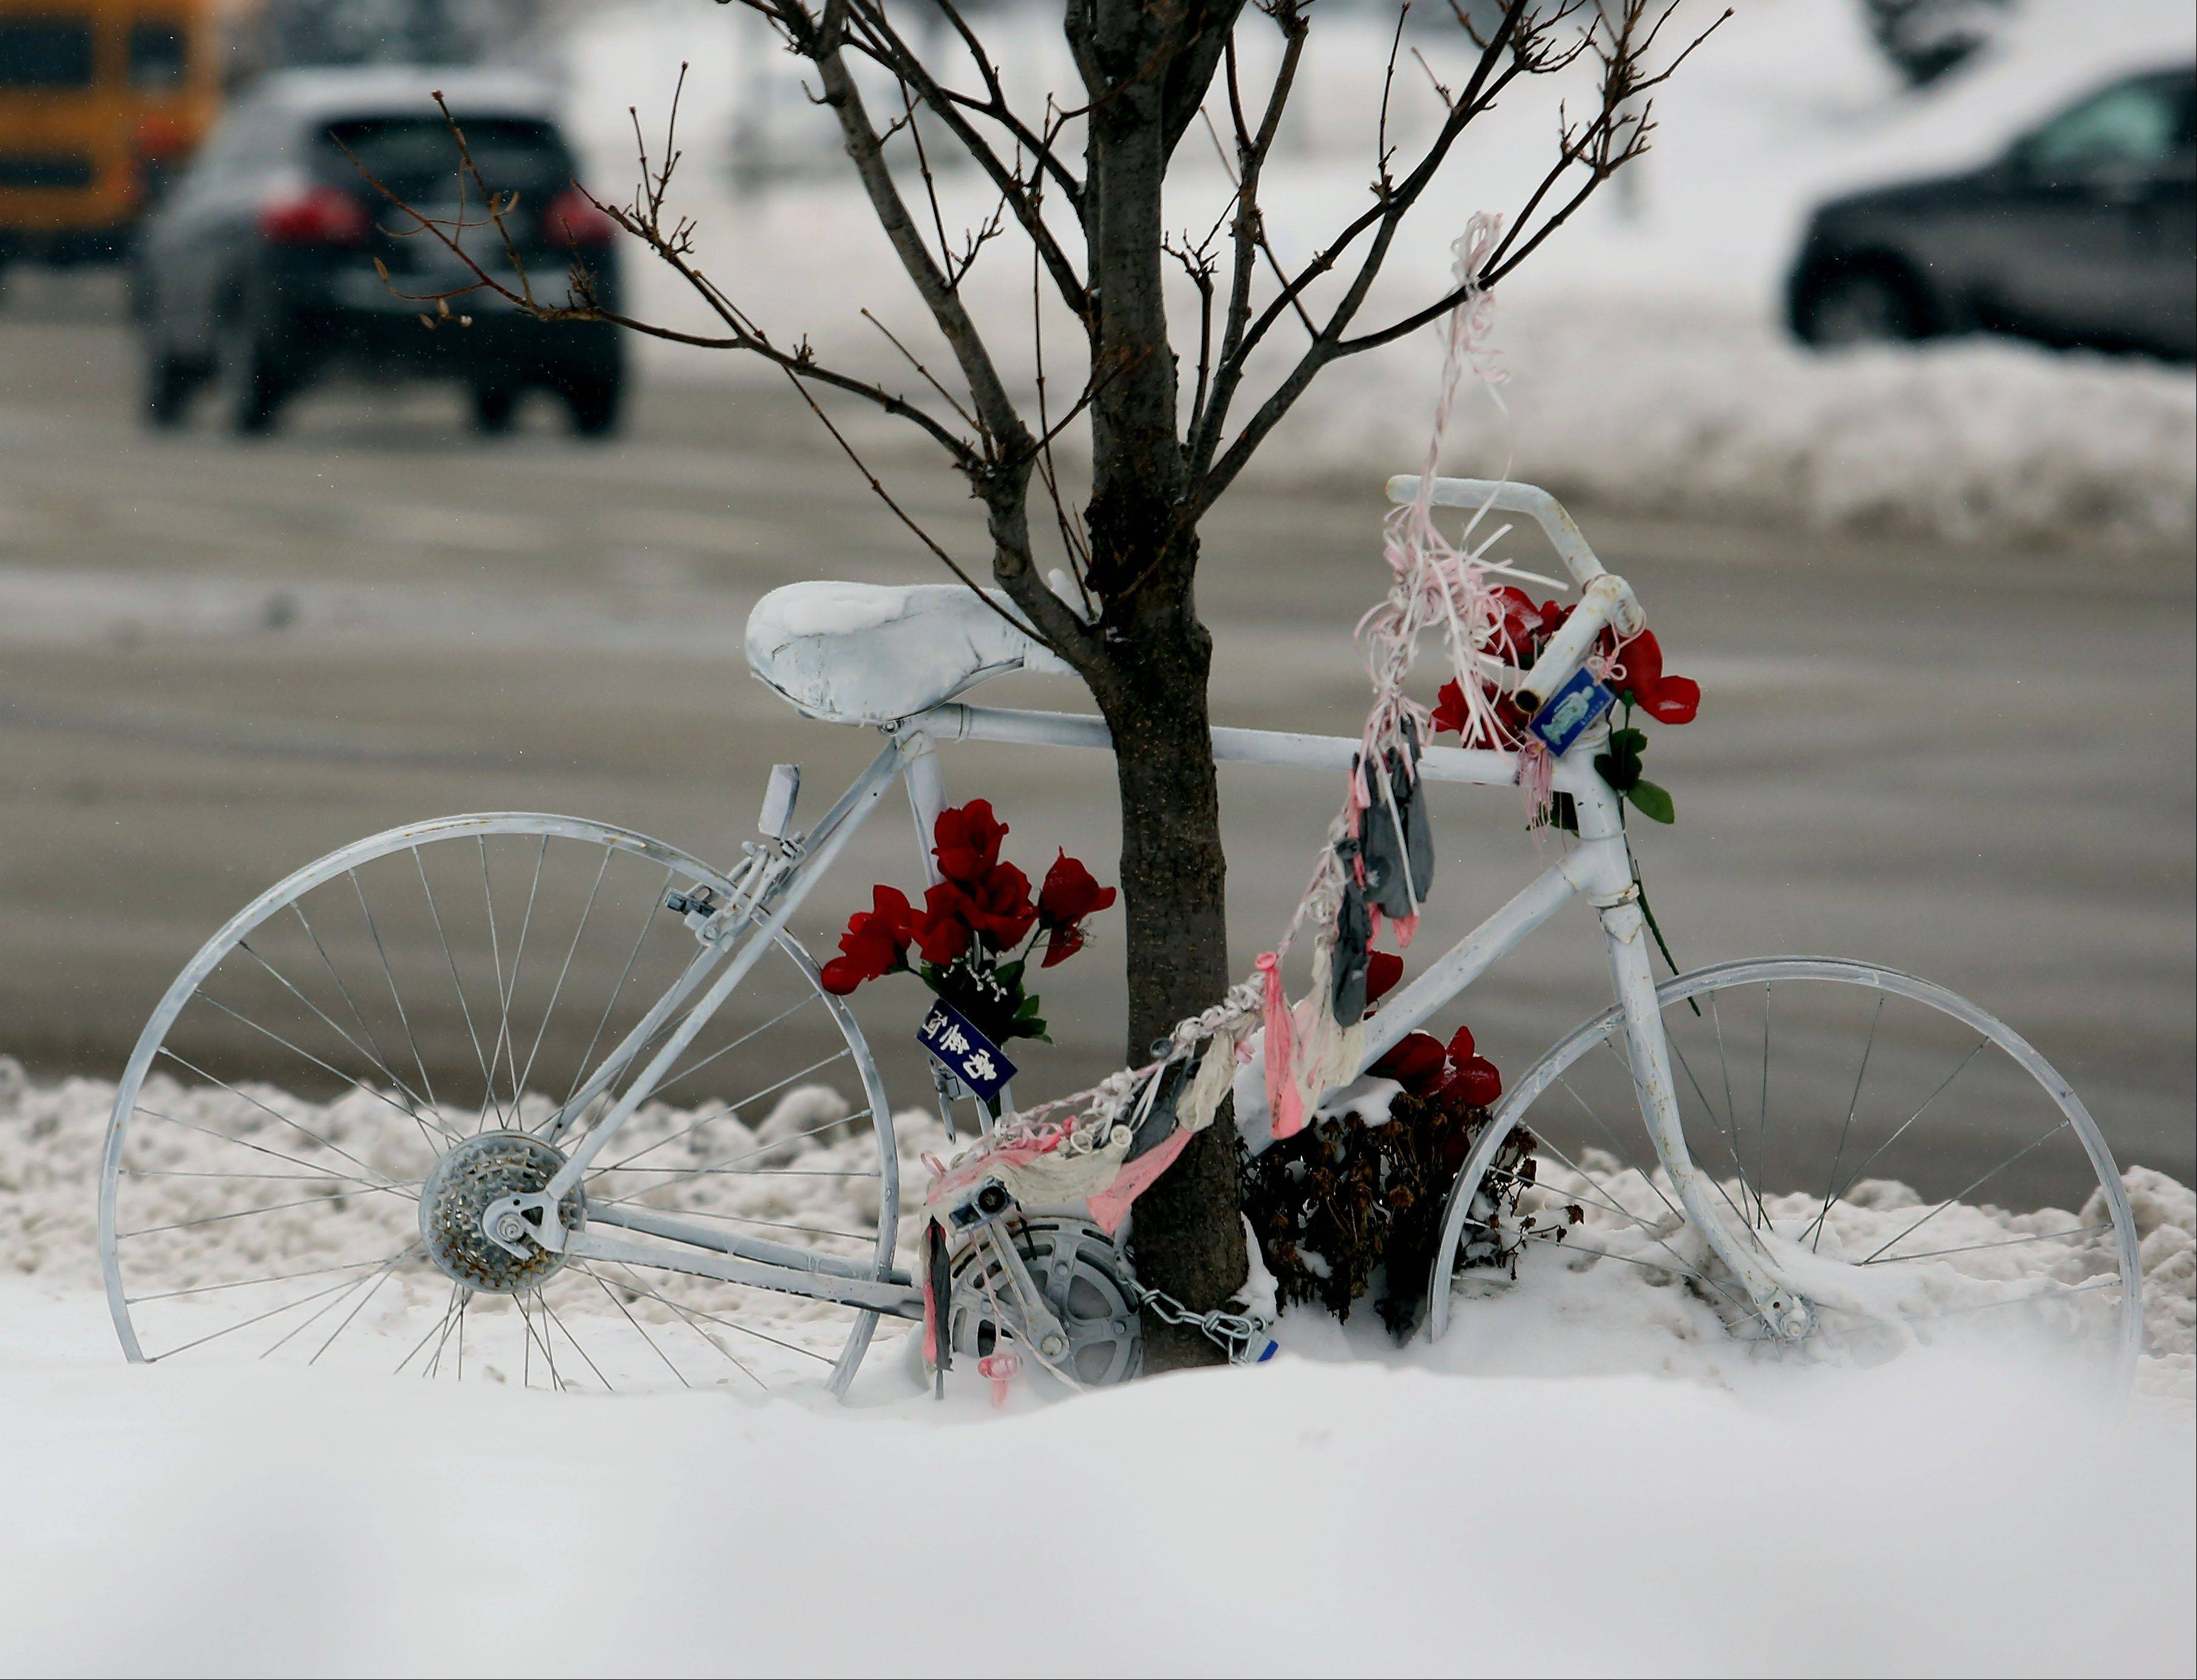 A so-called �Ghost Bike� has been placed along Diehl Road near Freedom Drive in honor of a 56-year-old Naperville woman who was struck and killed in September while riding her bicycle in that area.